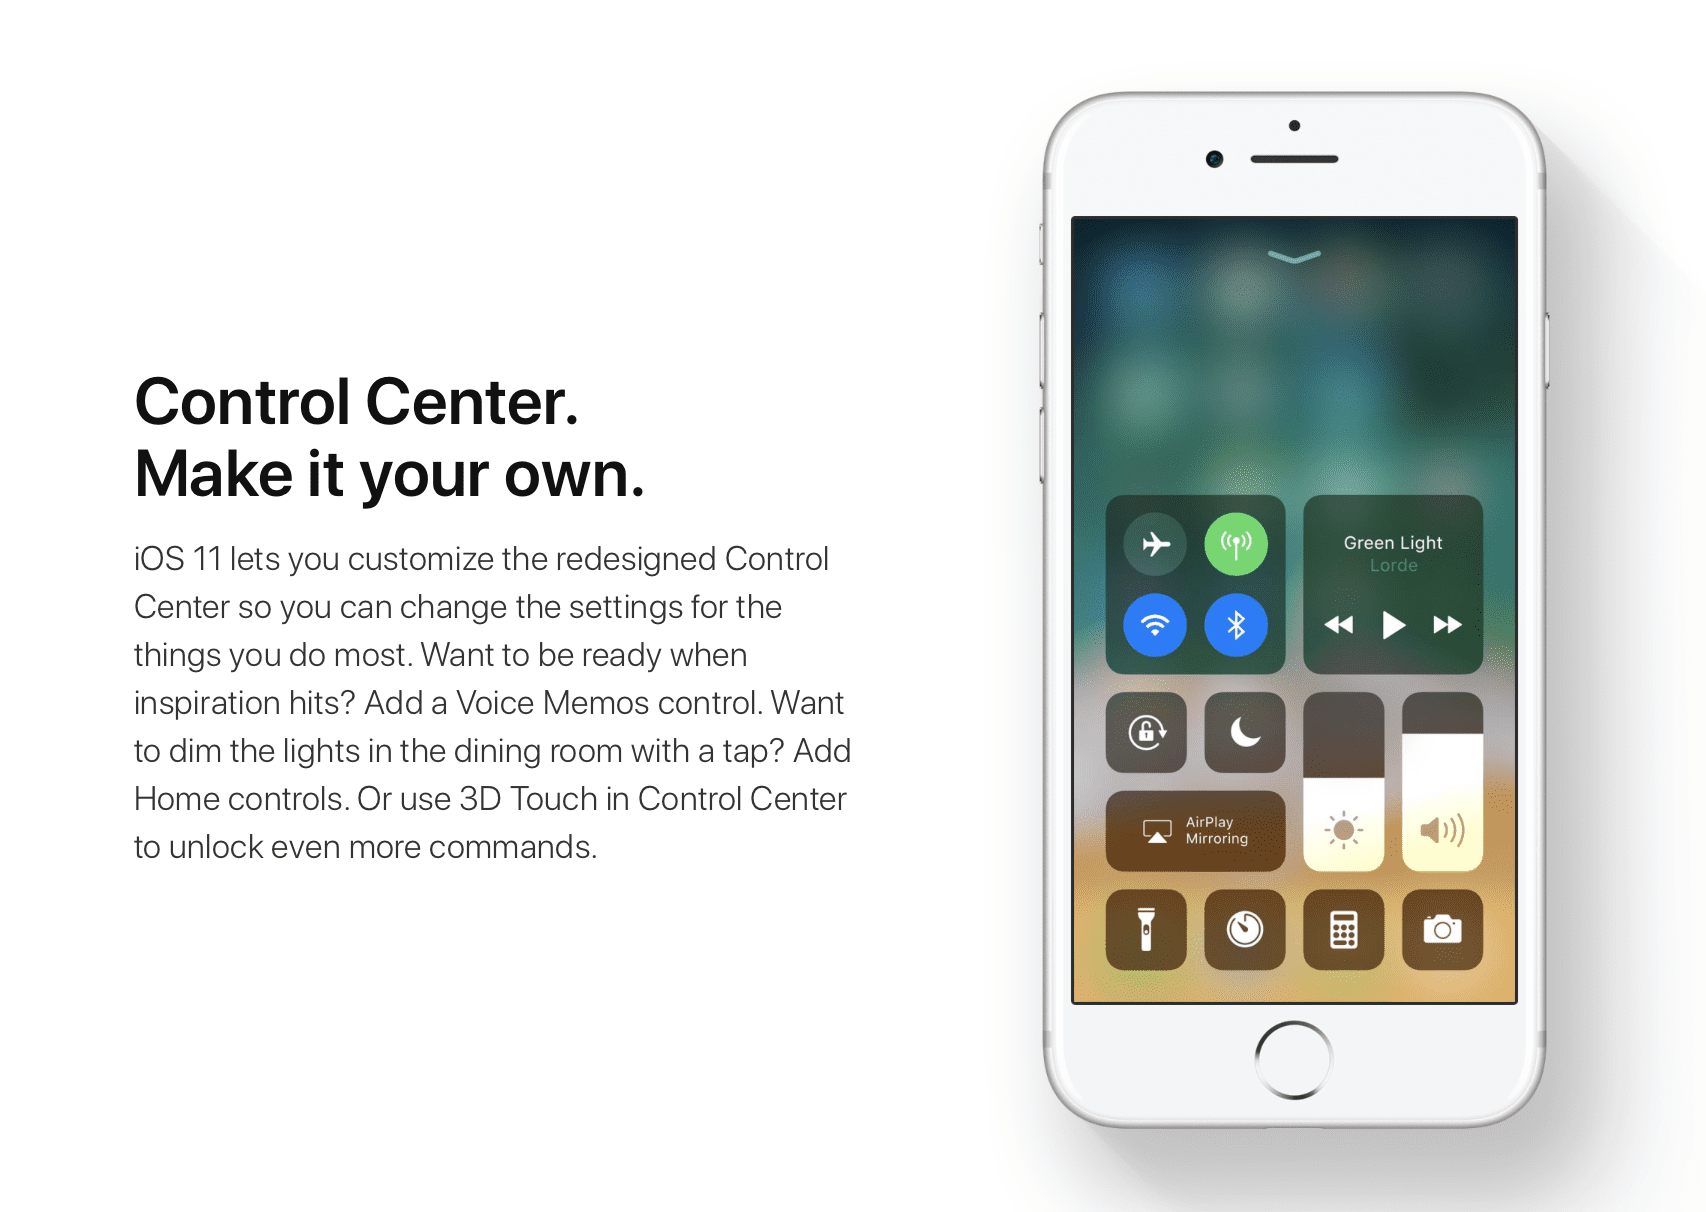 iOS 11 Control Center for iPhone and iPAd